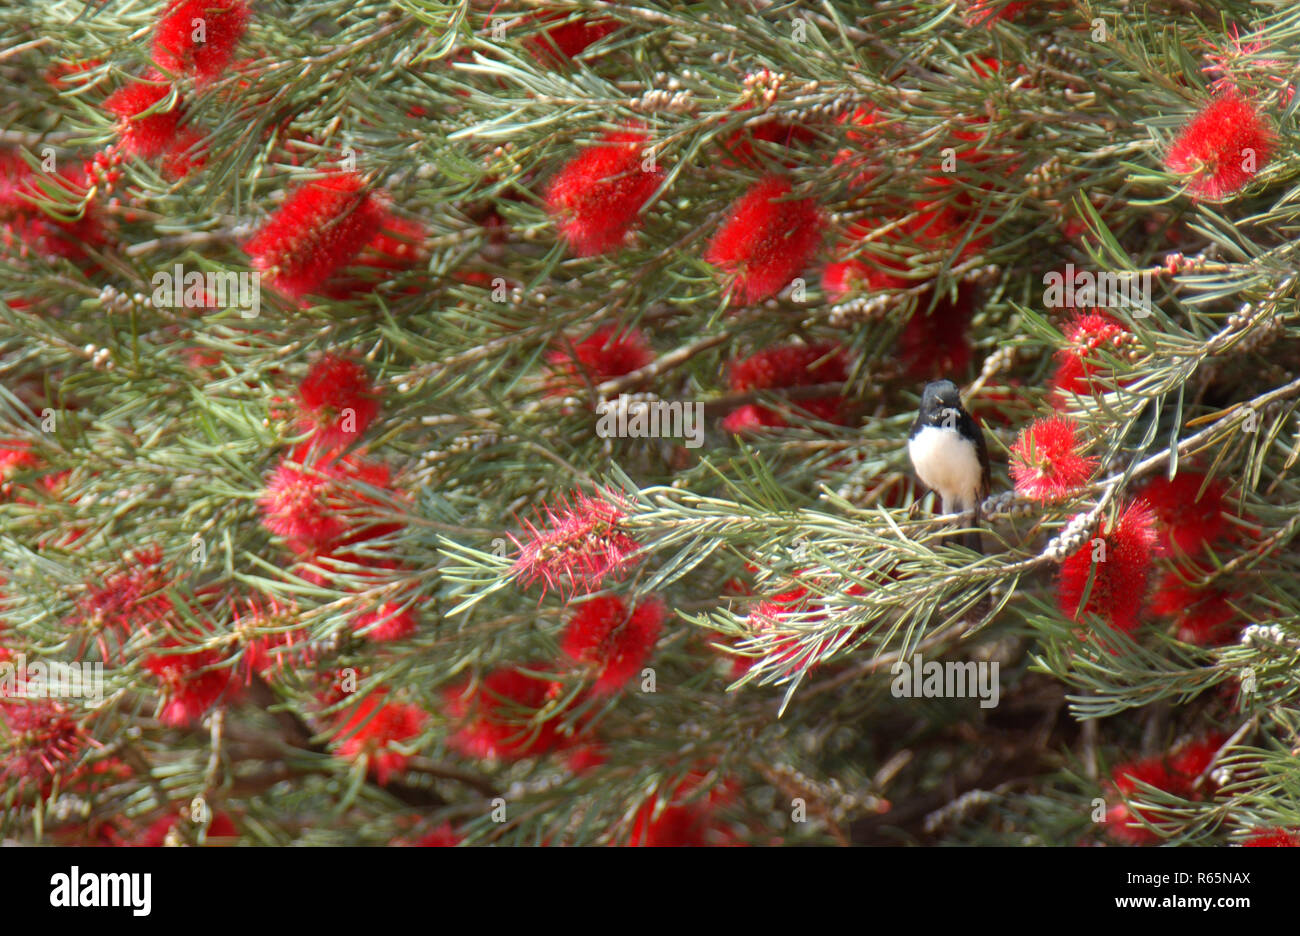 Willy Wagtail (Rhipidura leucophrys) seen here in red Bottlebrush bush. Western Australia. - Stock Image